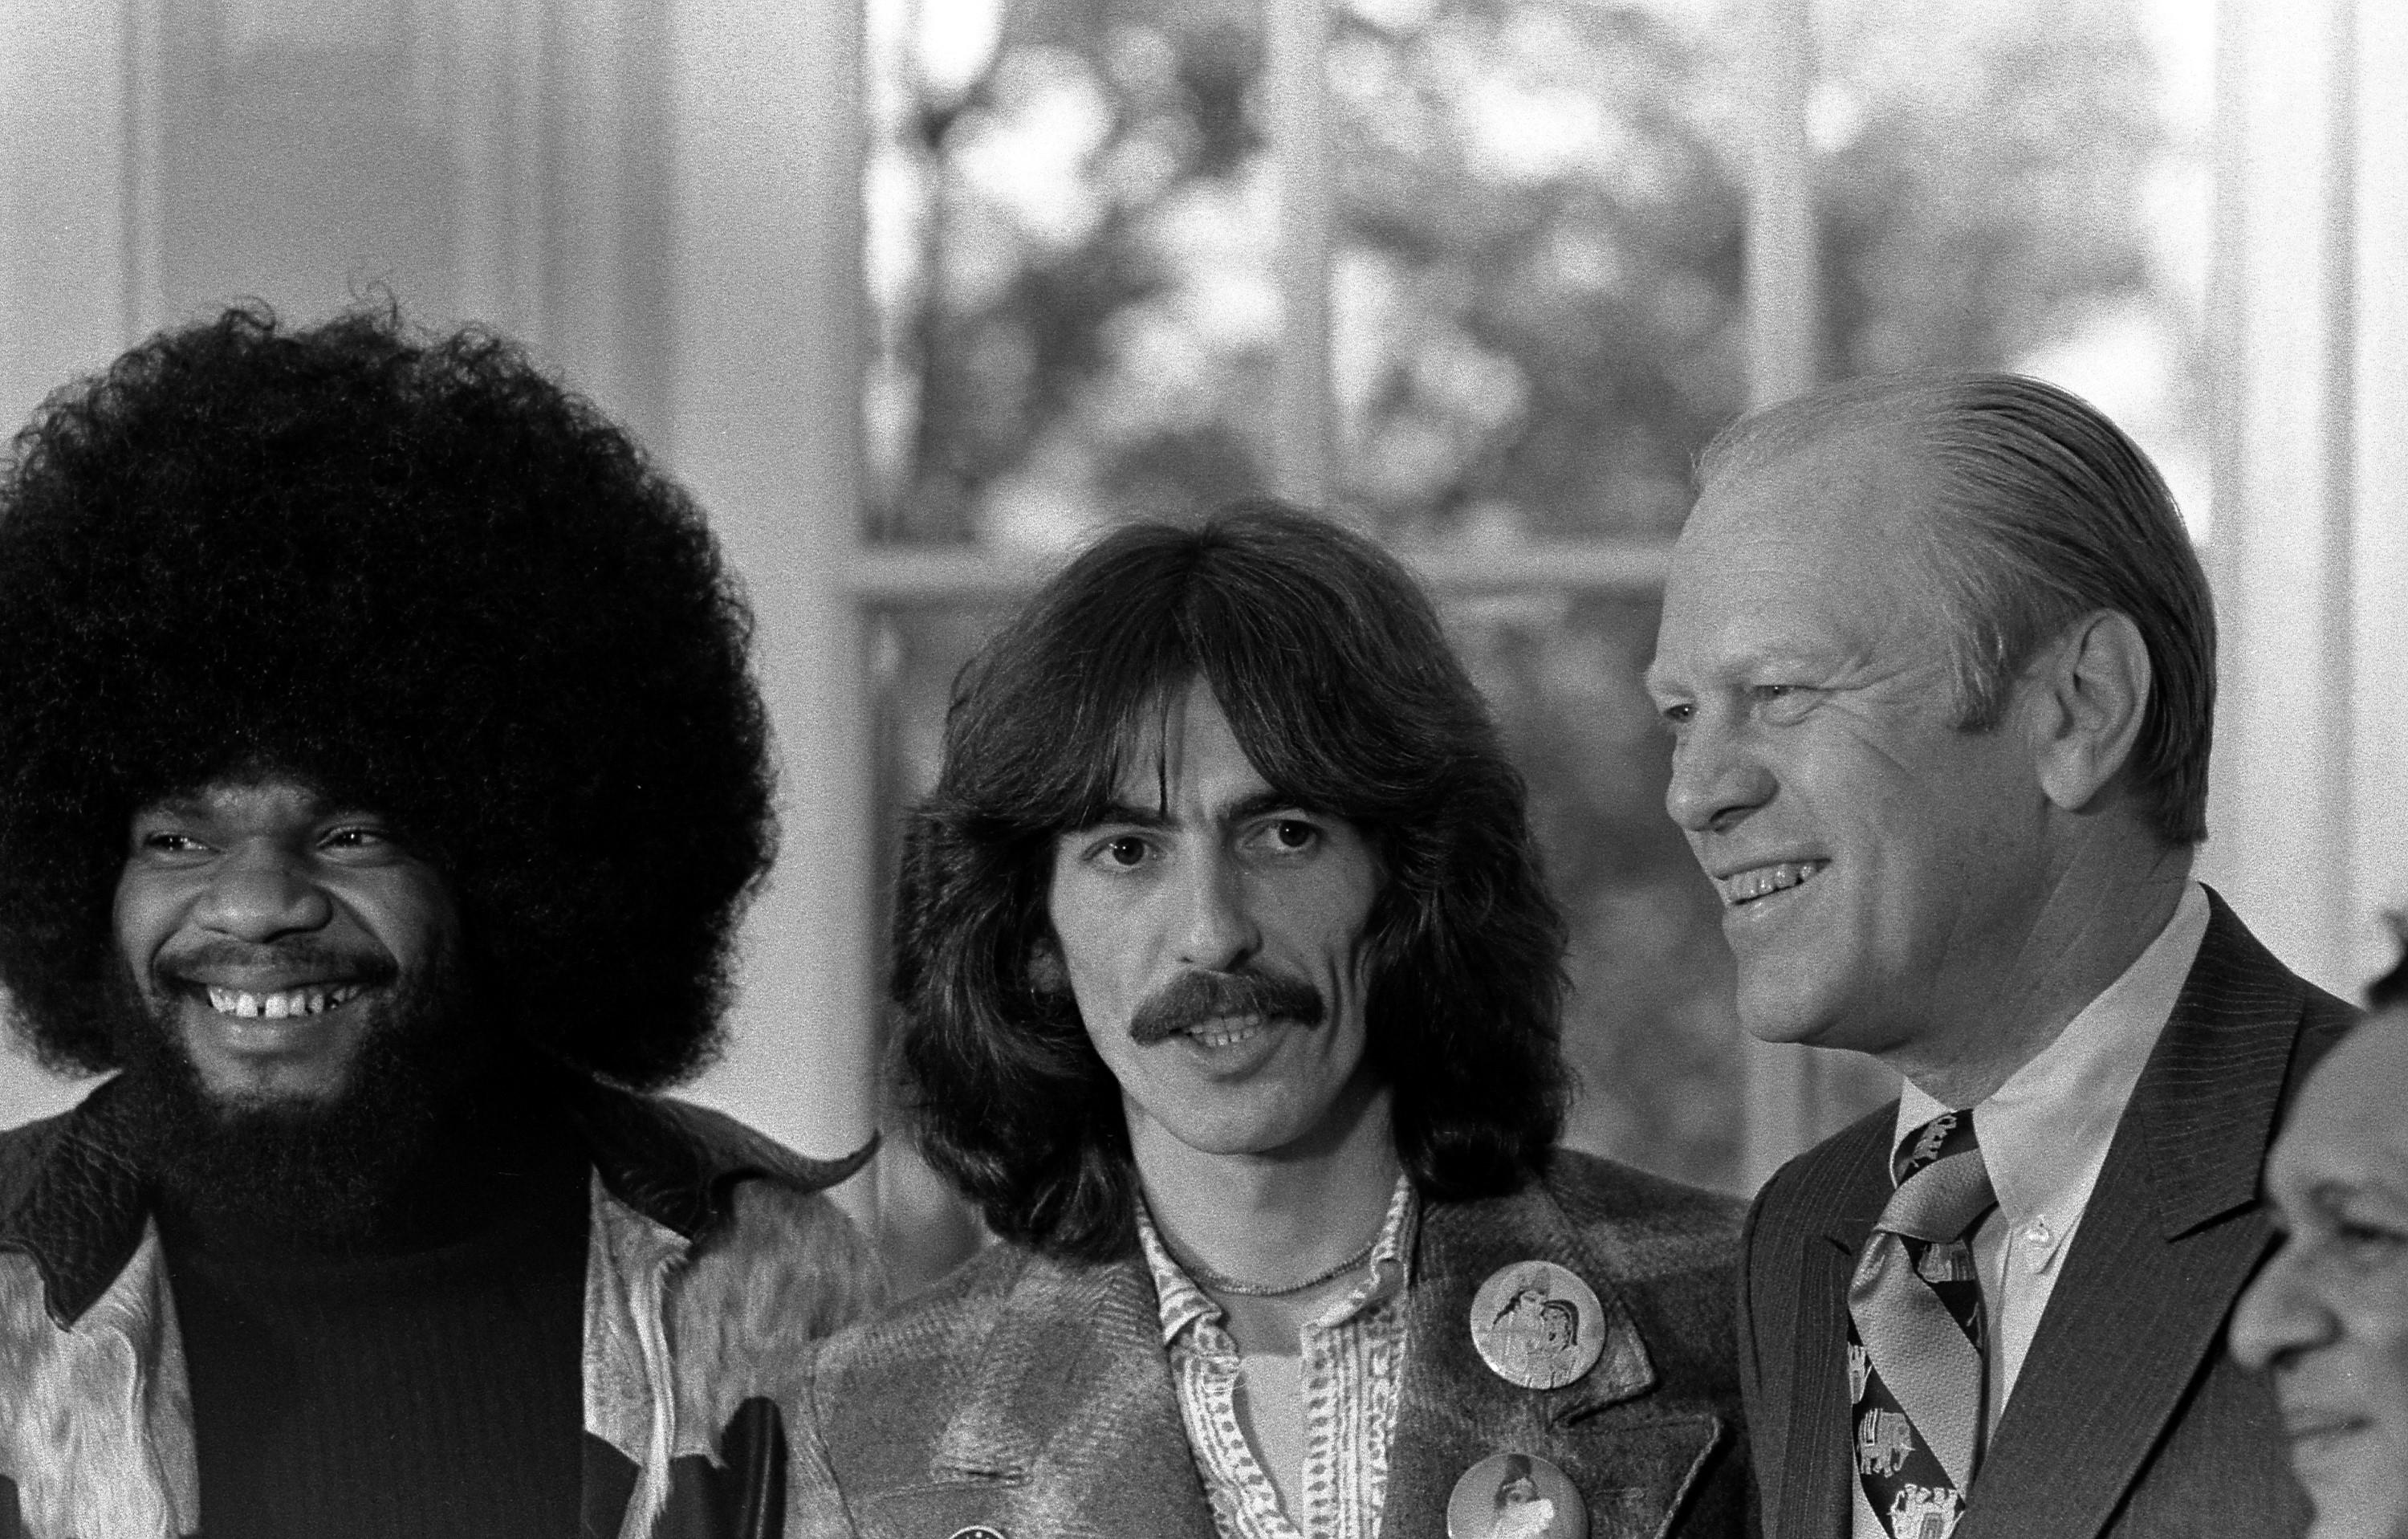 Billy Preston, George Harrison, Gerald Ford and Ravi Shankar in the Oval Office.